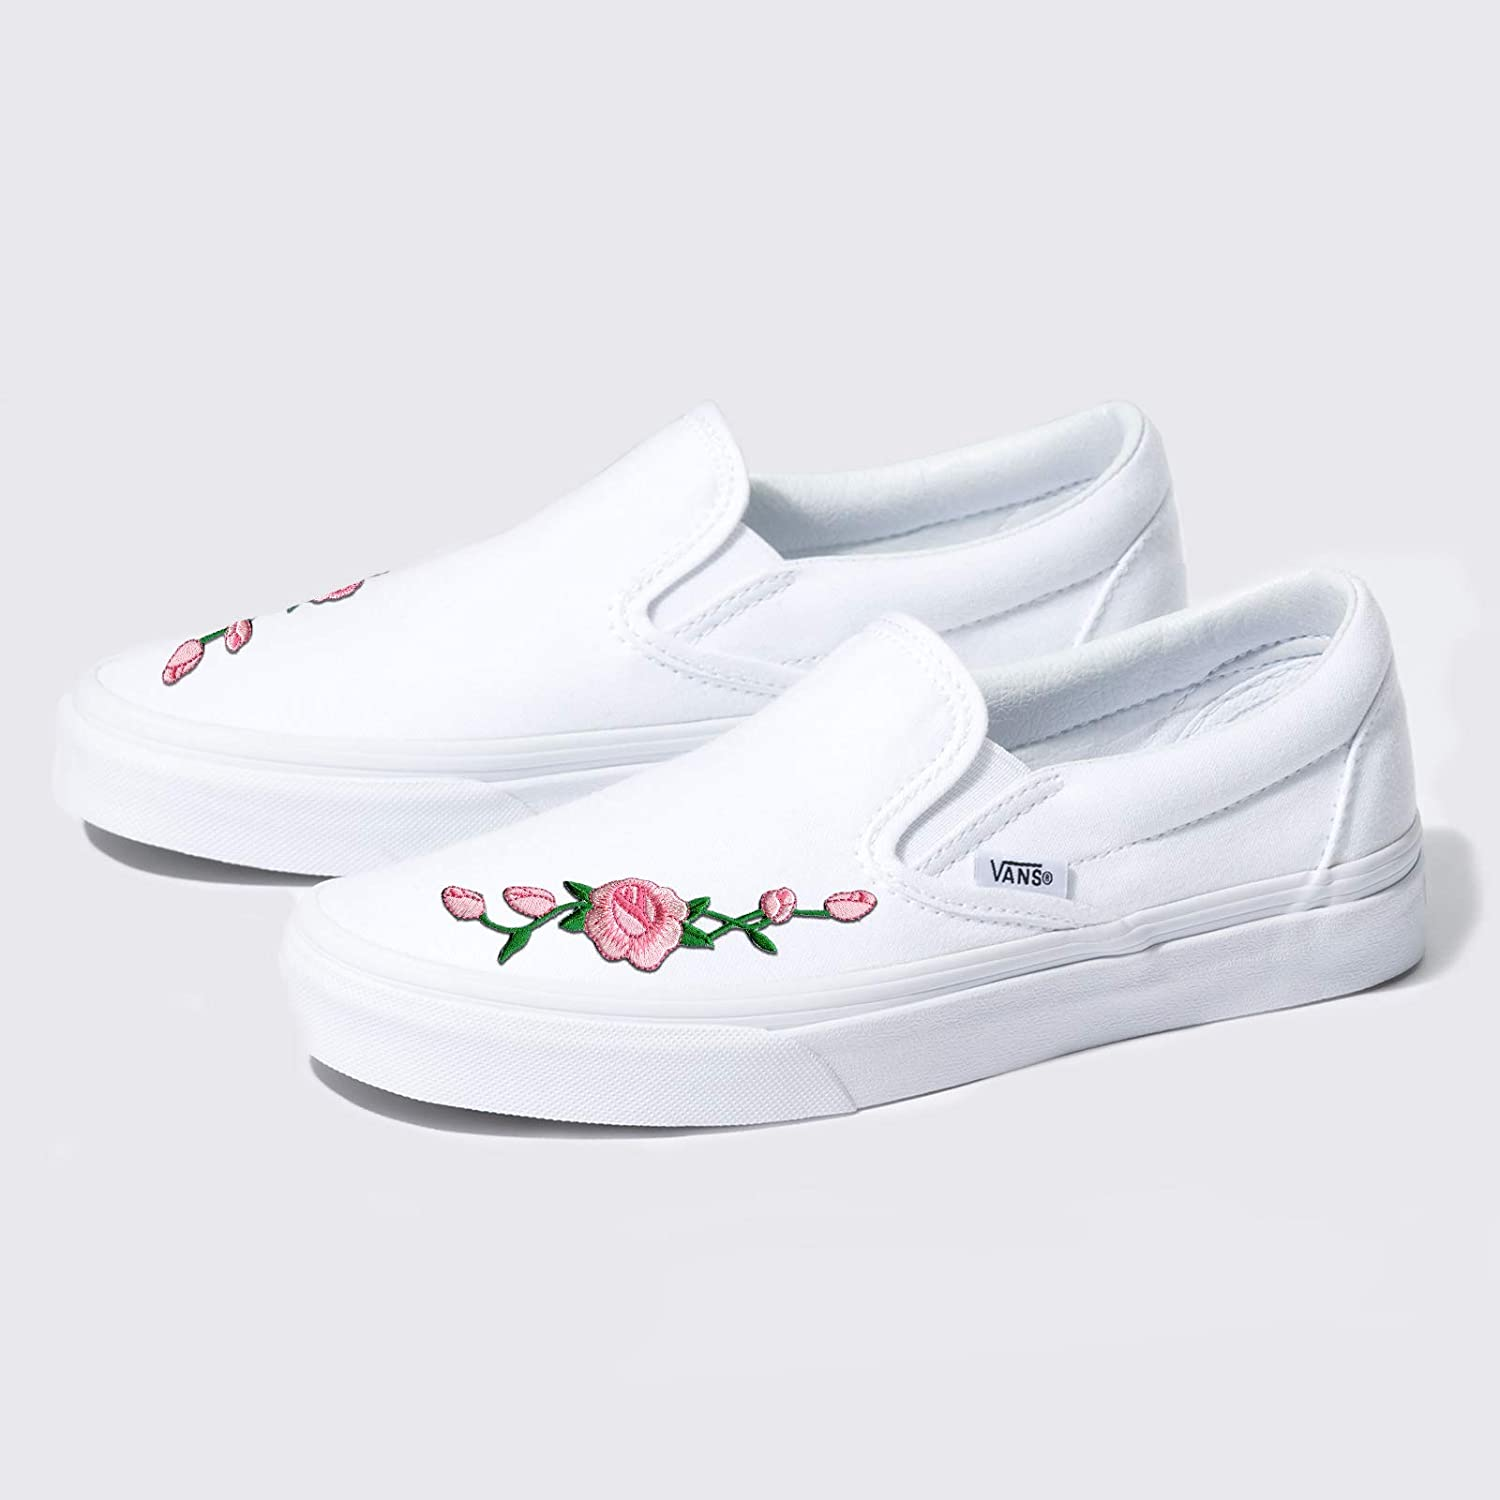 c2b1e3c0cea5 Amazon.com  Custom White Slip-On Vans Embroidered Pink Rose Handmade Shoes  By Patch Collection  Handmade